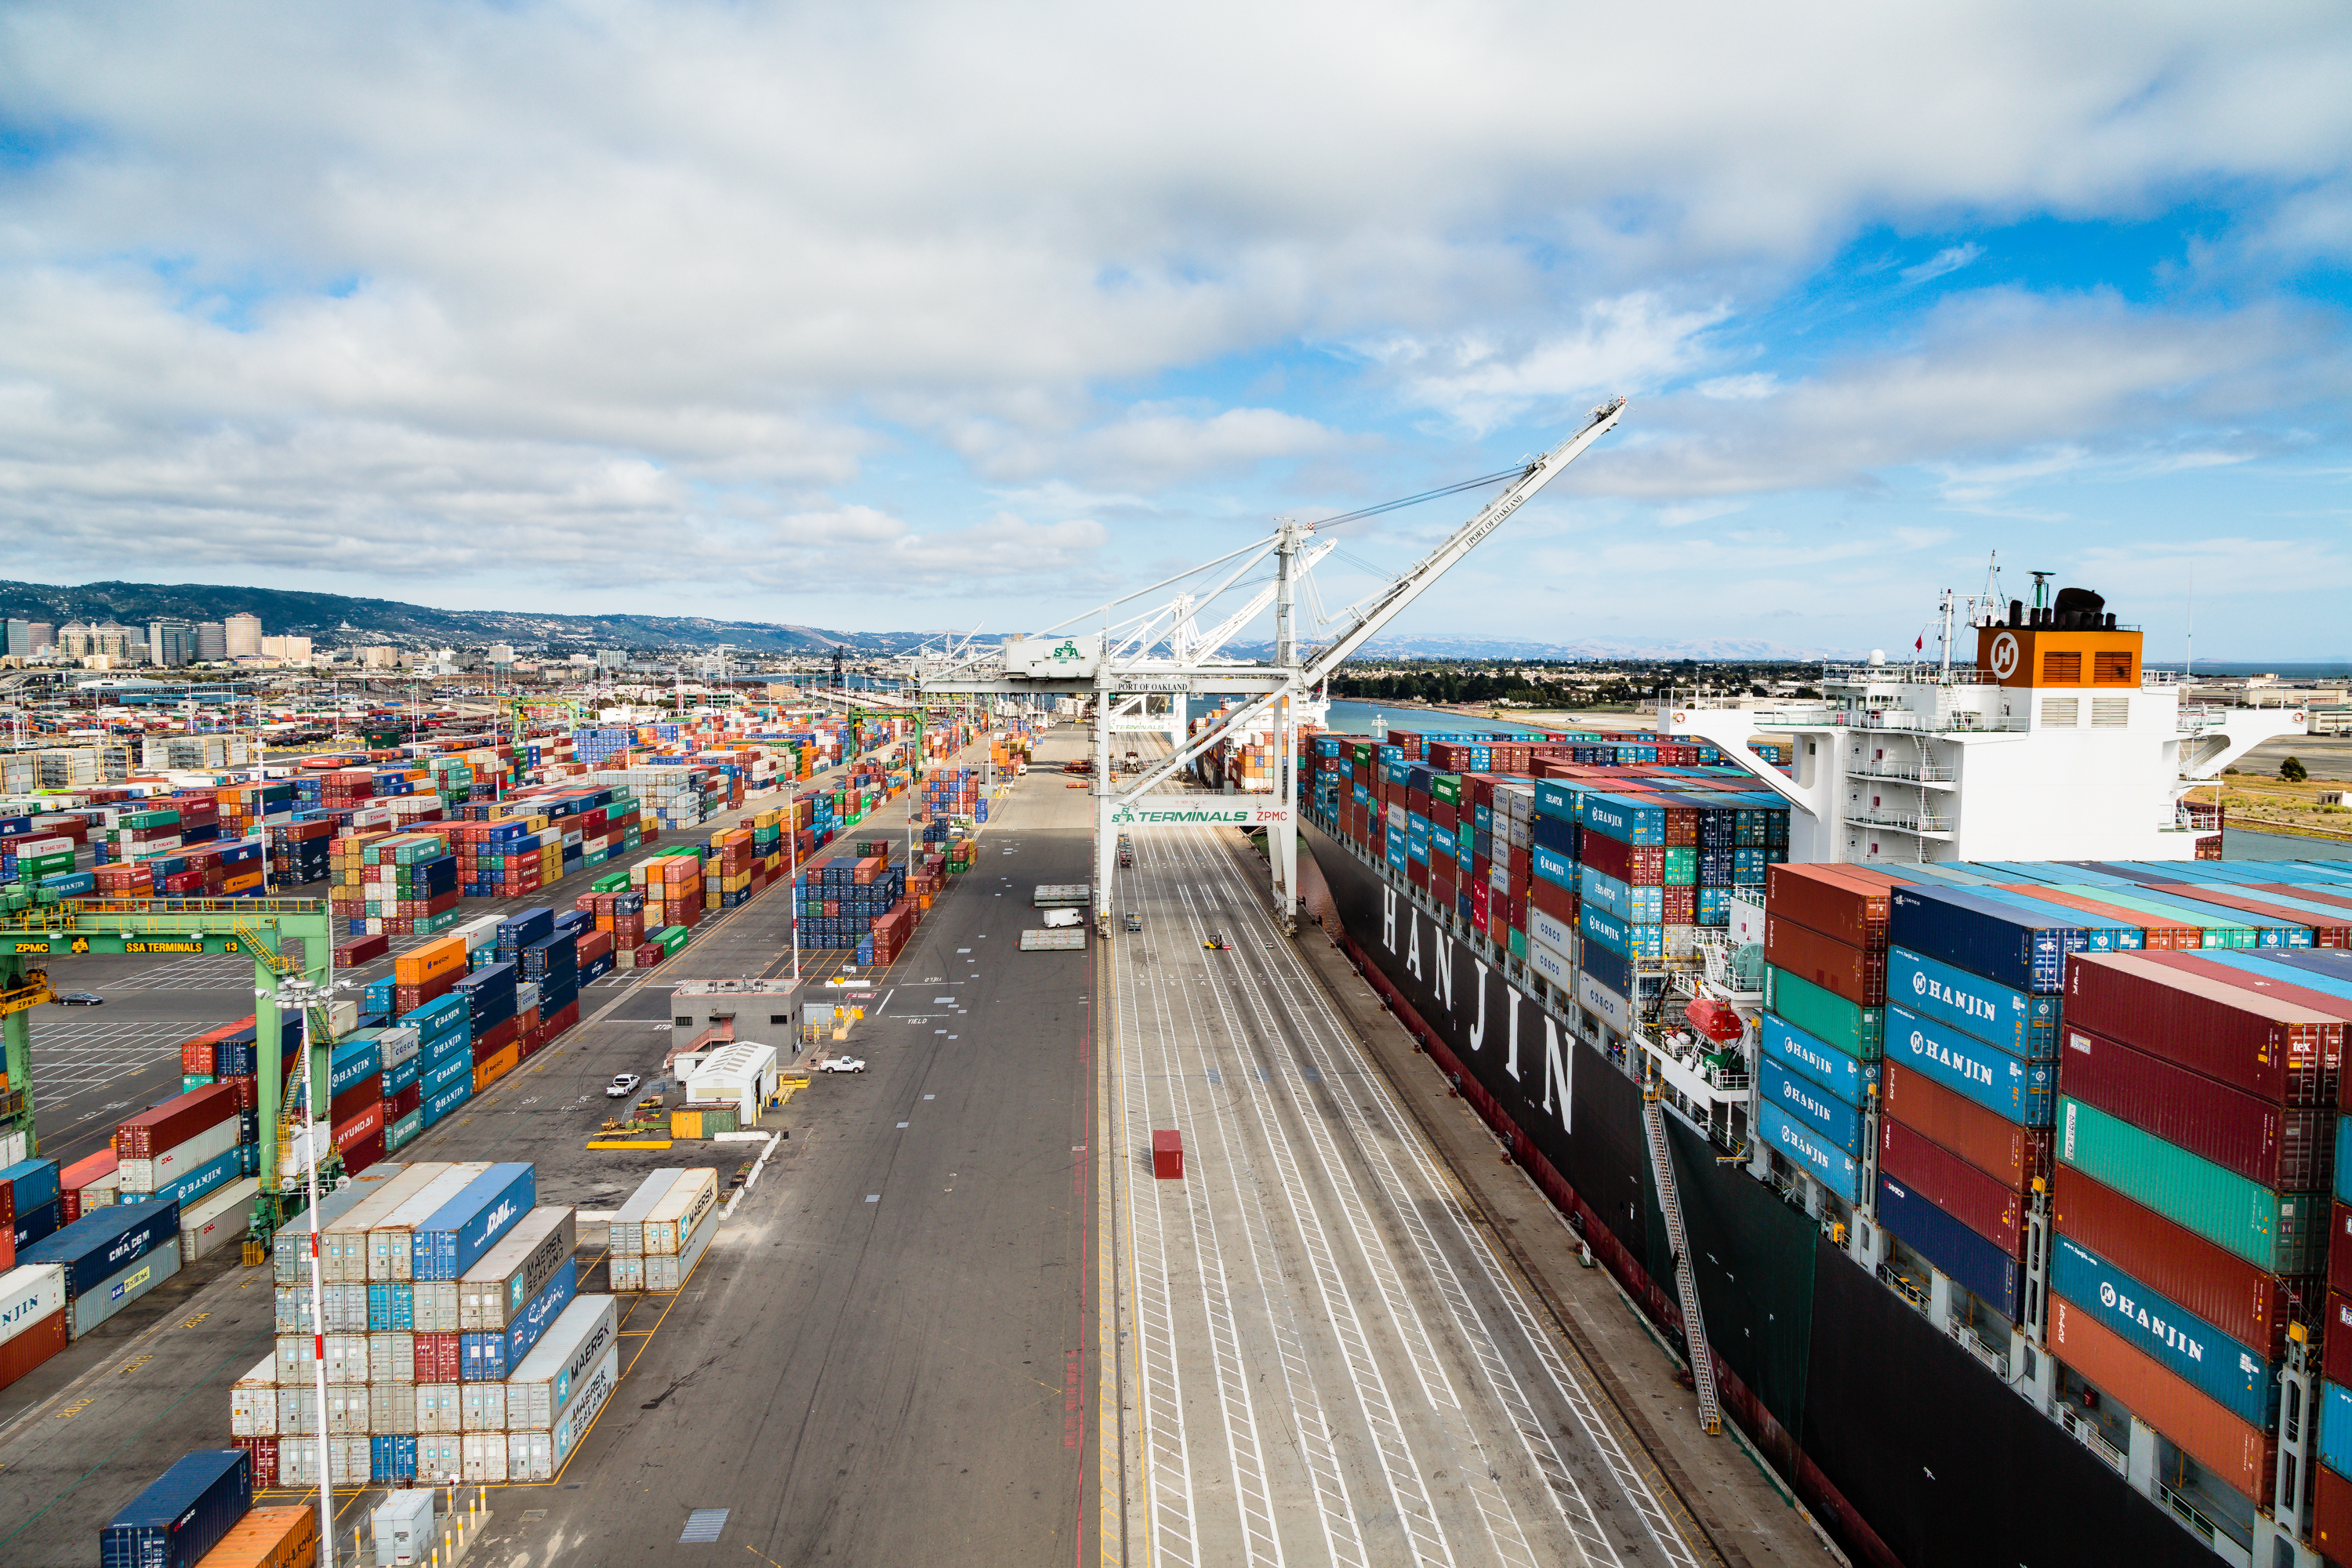 A sea of containers at the Port of Oakland. (Photo: Port of Oakland)